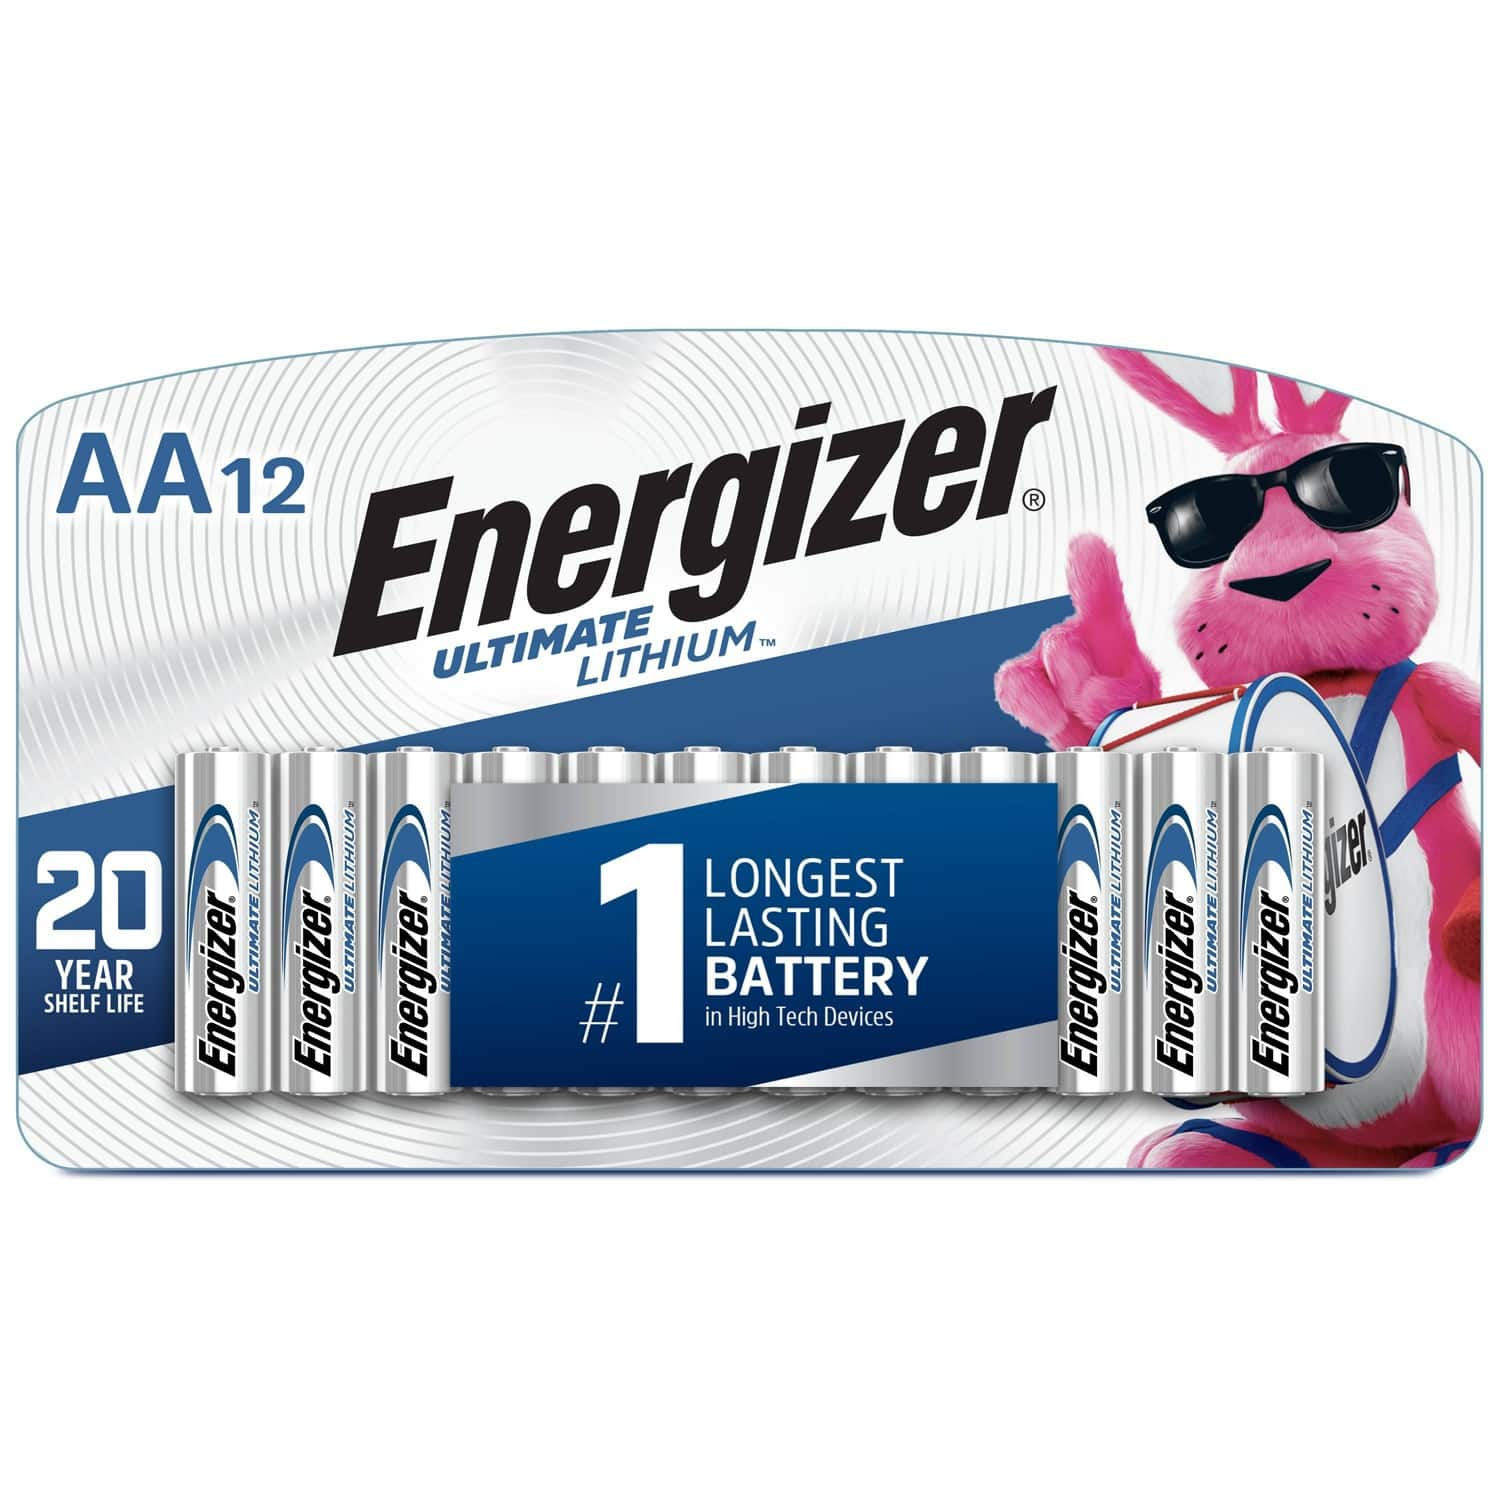 Energizer 12 pack Ultimate Lithium AA Batteries - 70% off, Target instore only $4.79